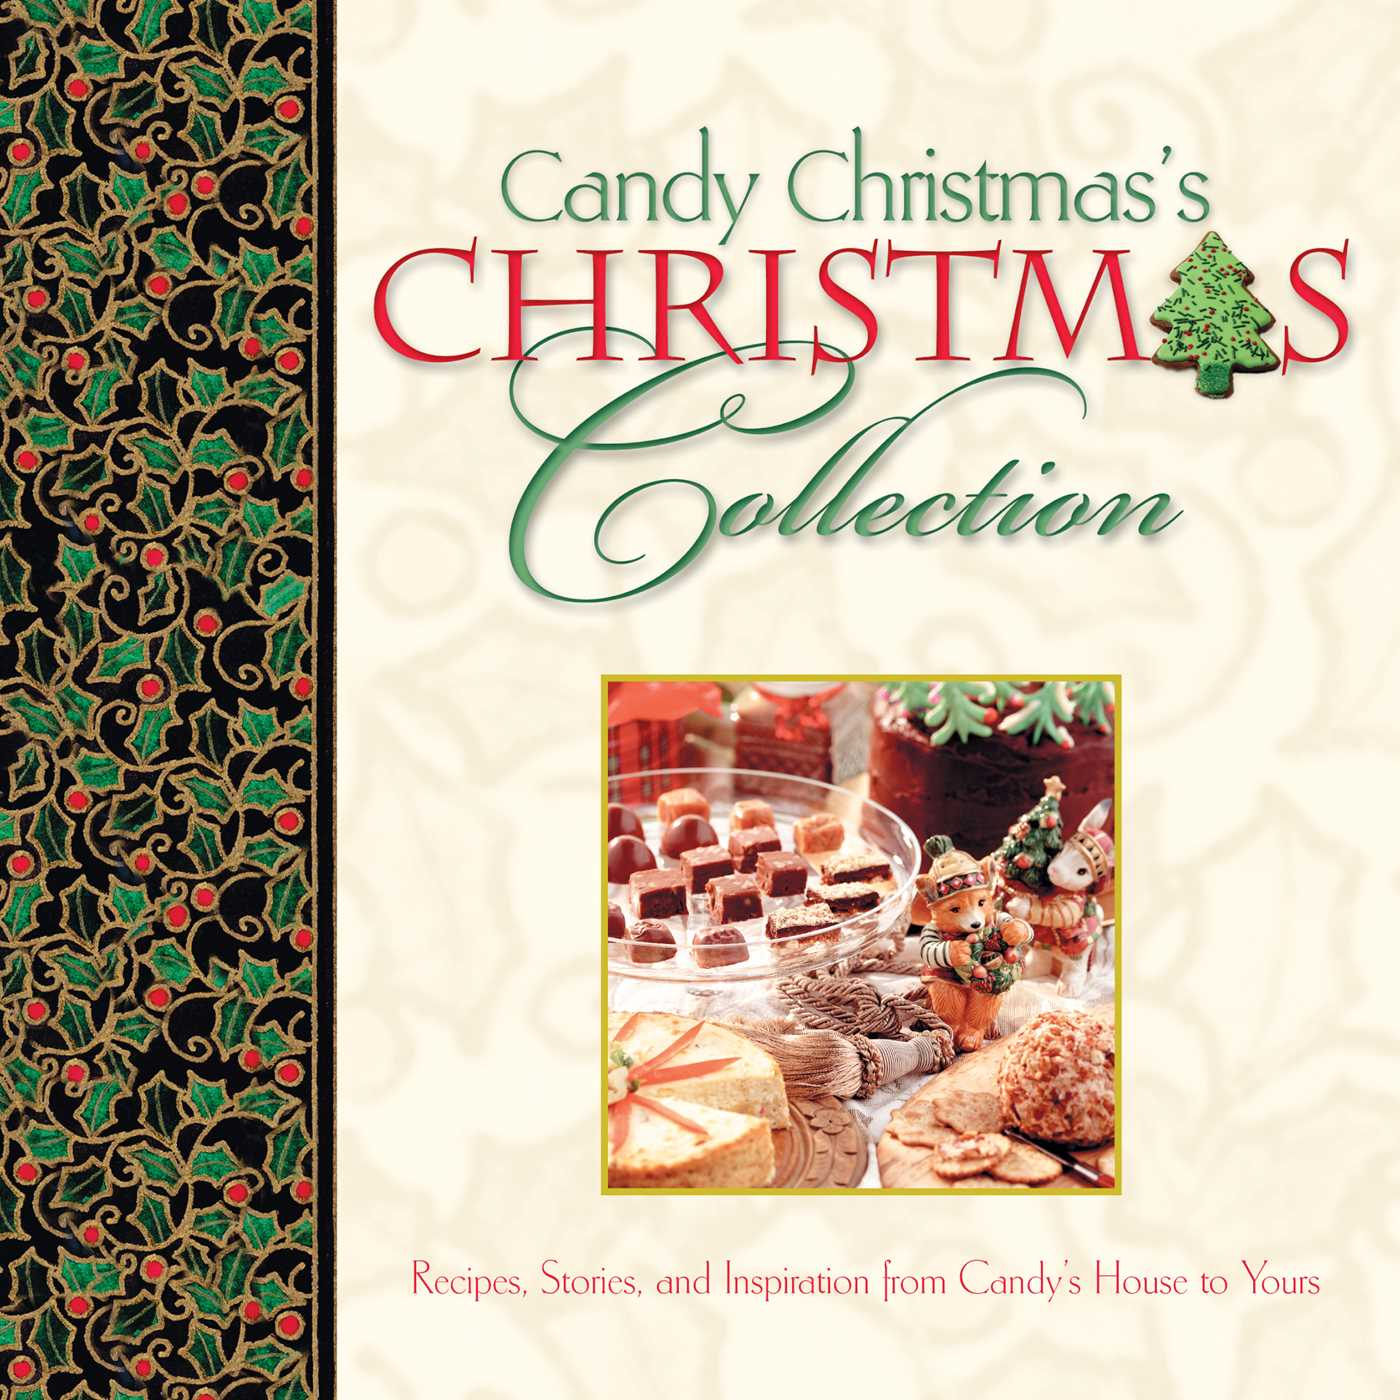 Candy christmass christmas collection gift 9781451604986 hr